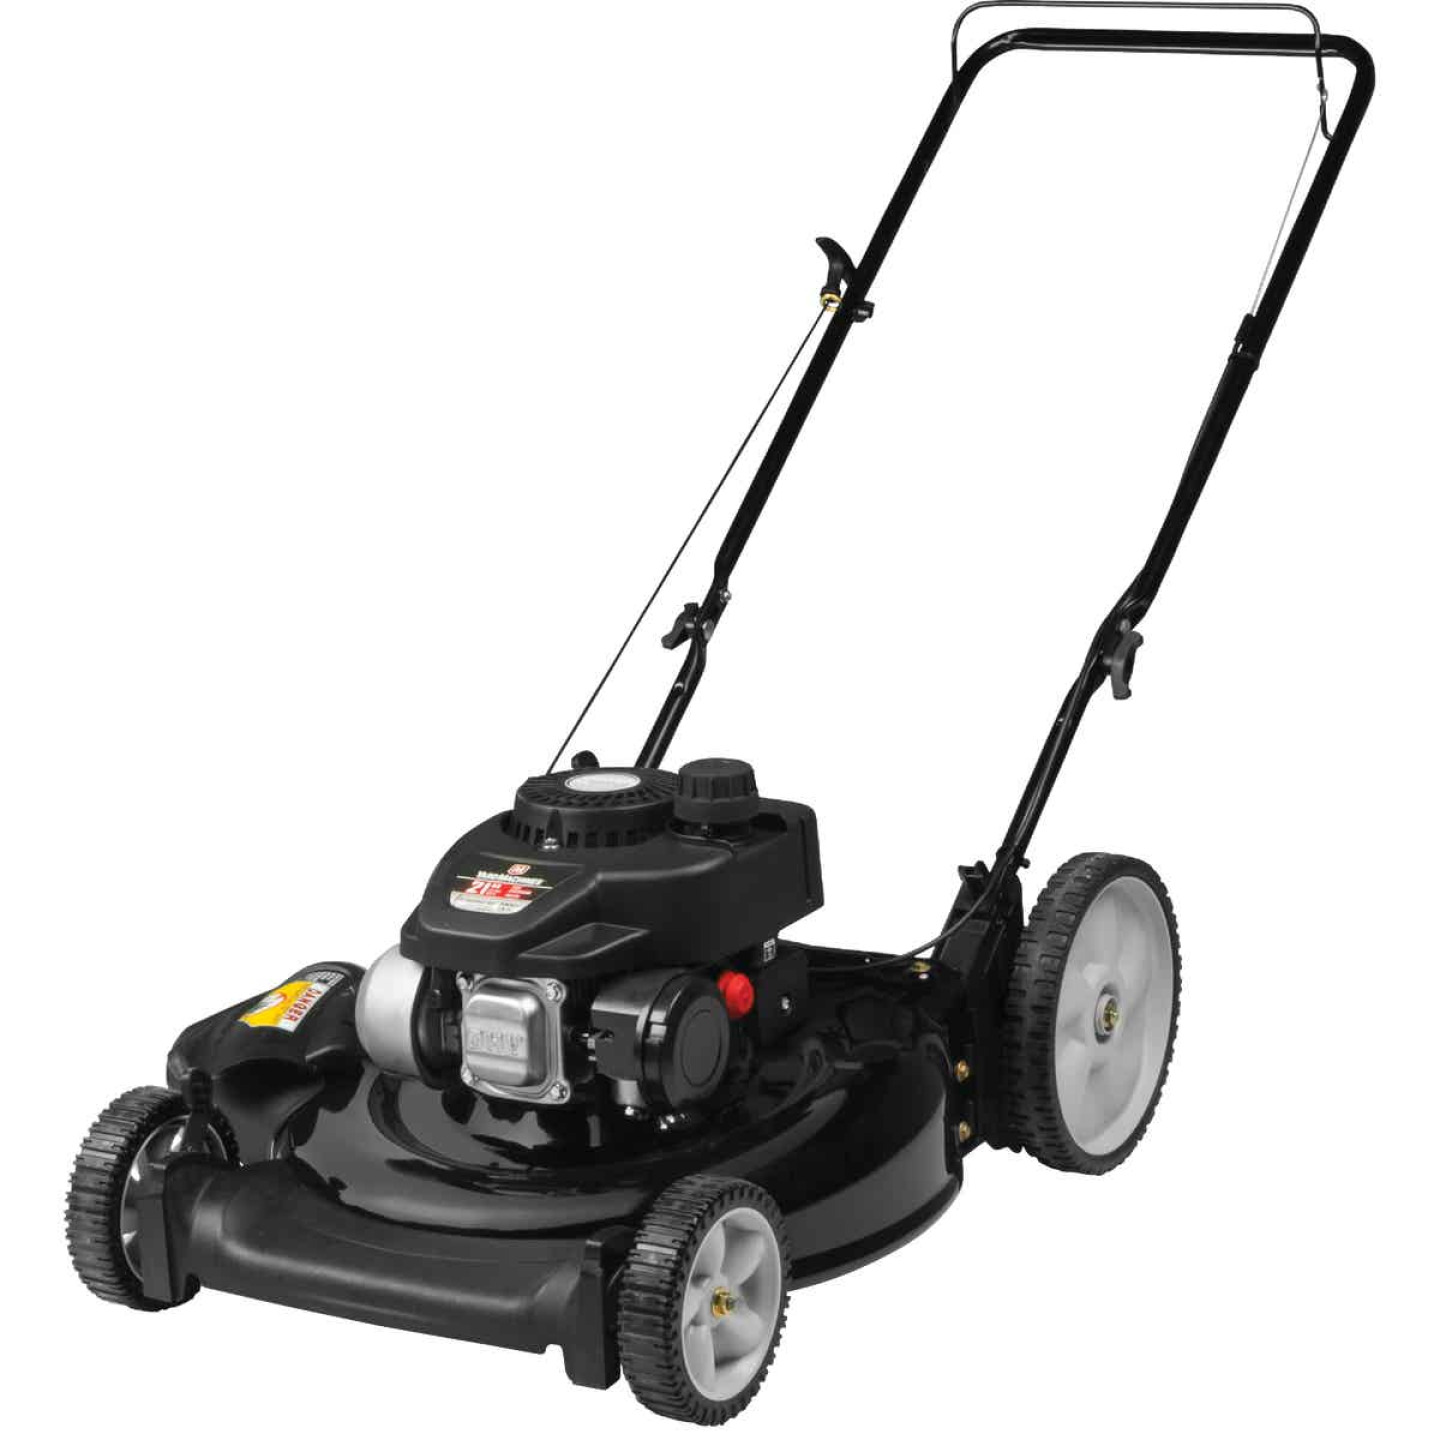 Yard Machines 21 In. 140cc OHV Powermore High Wheel Push Gas Lawn Mower Image 1